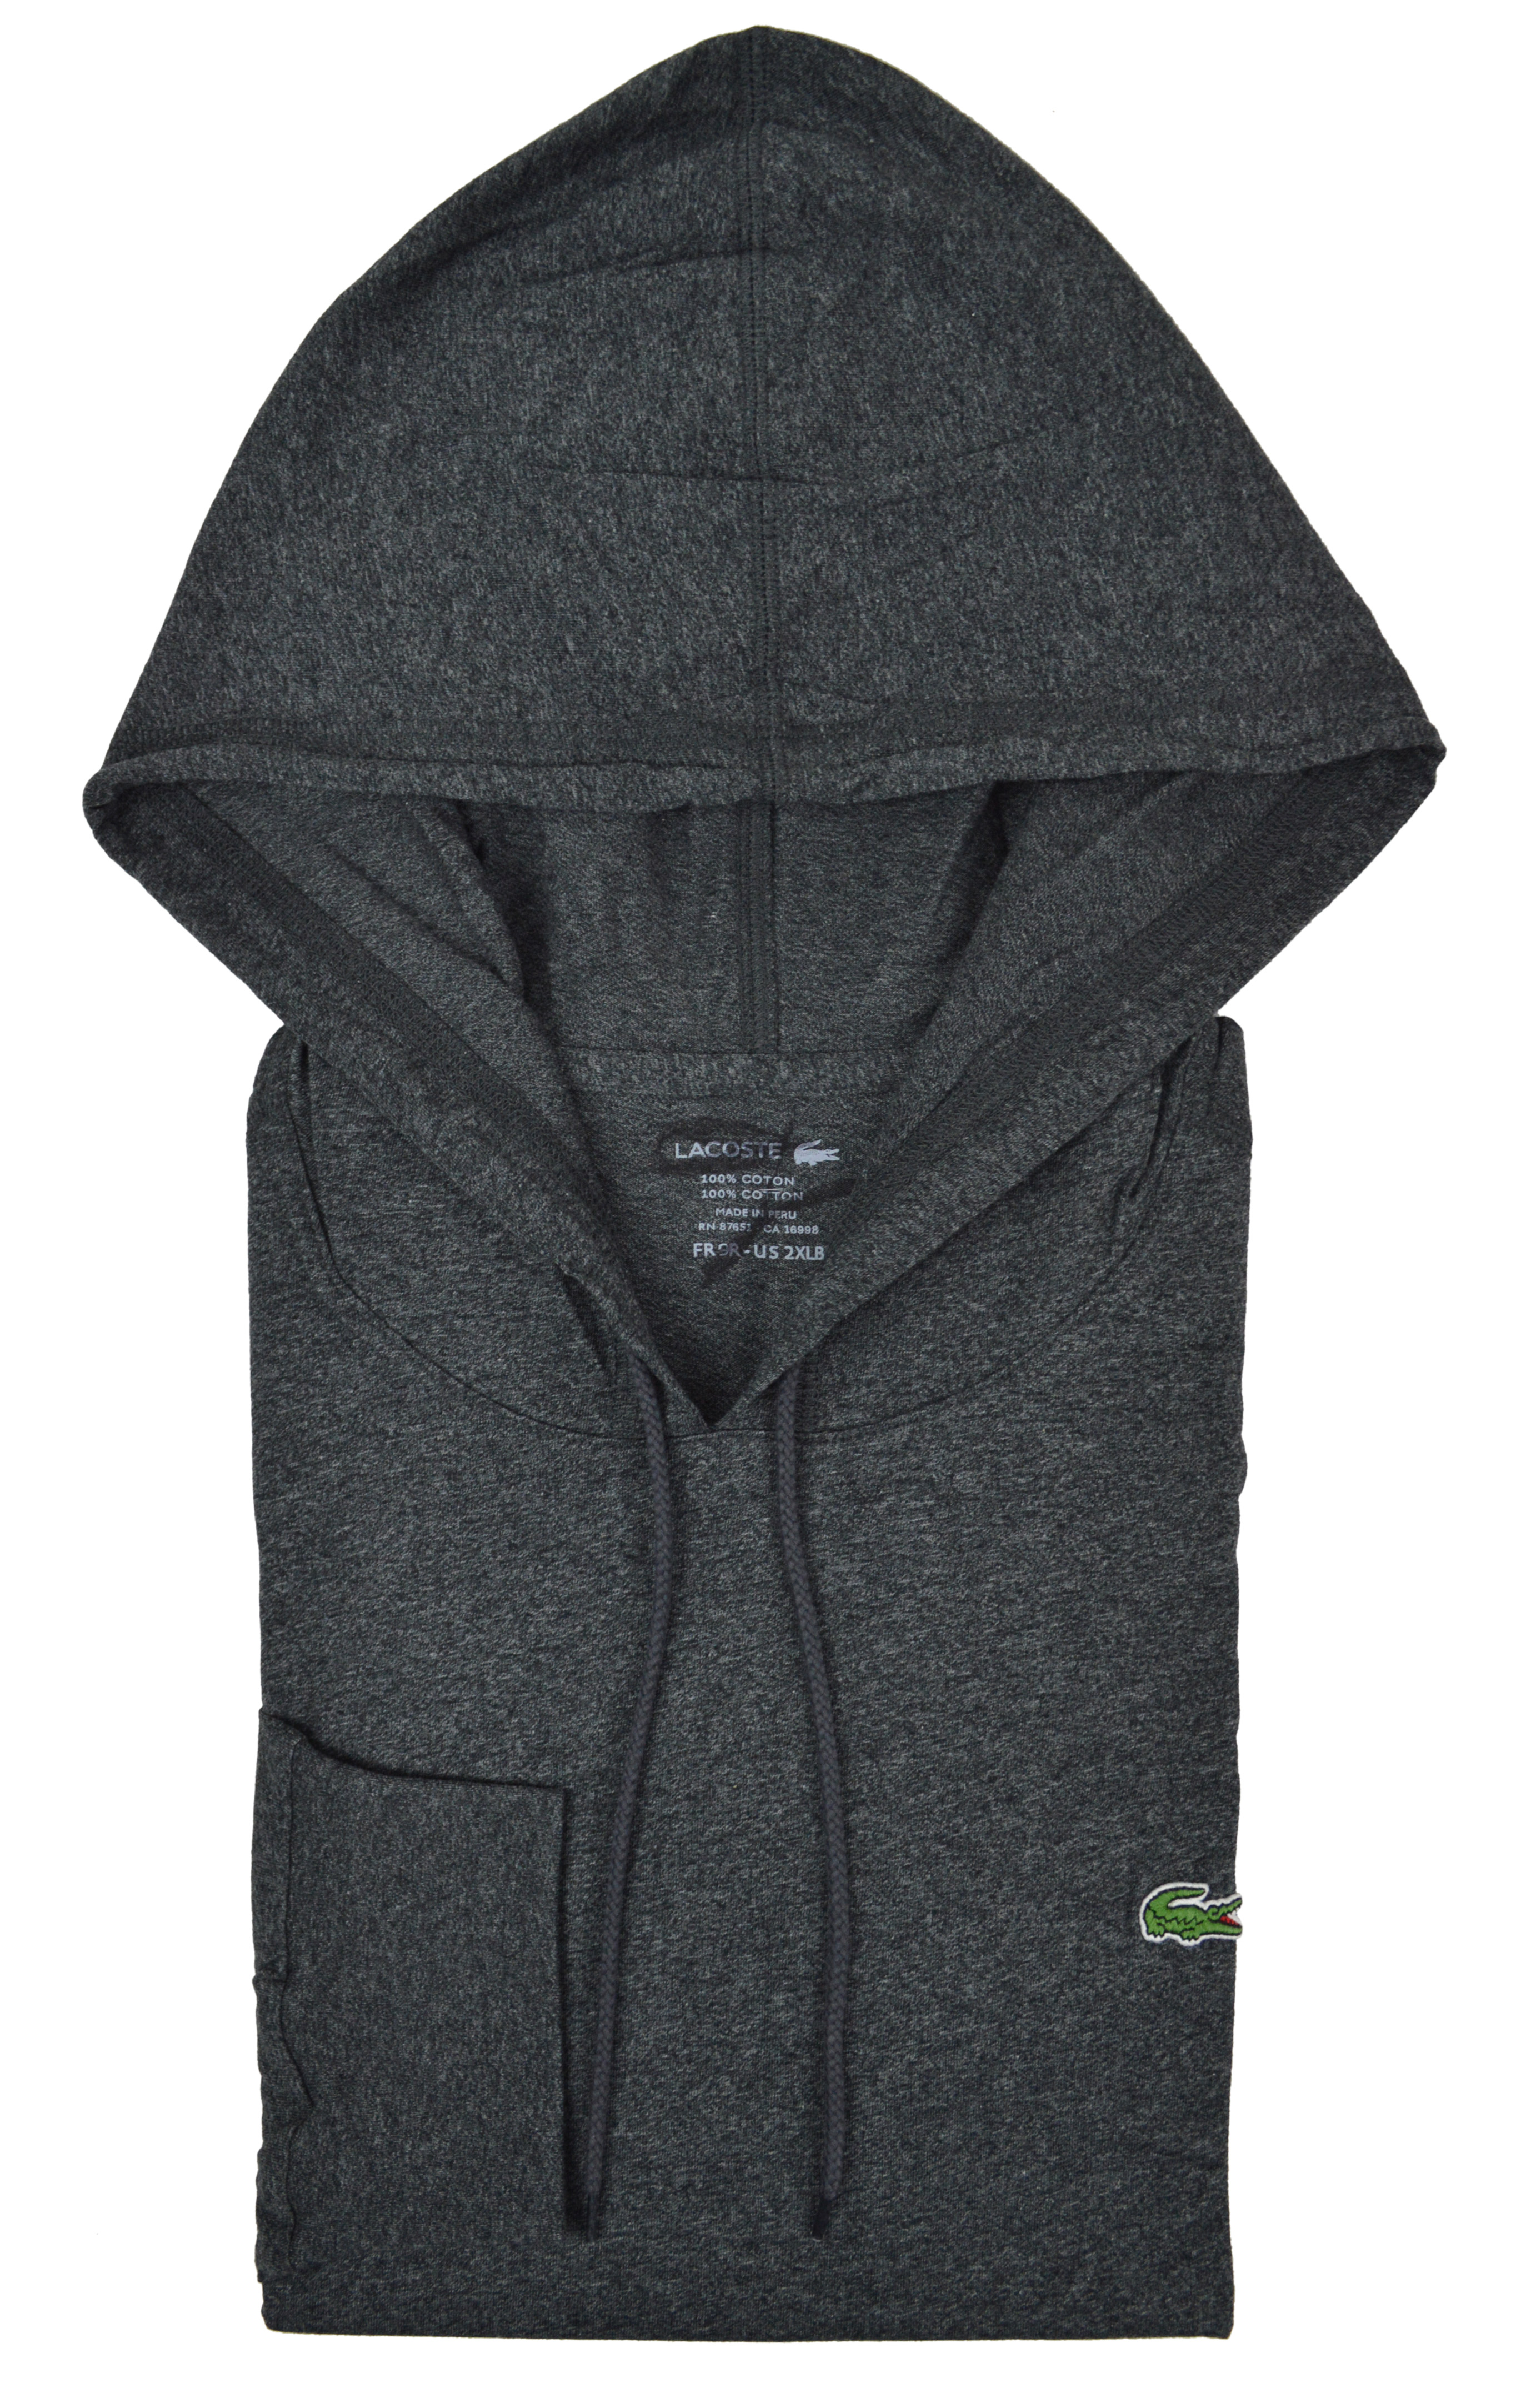 Lacoste Mens Big Tall Long Sleeve Hoodie Hoody Dark Gray 2xlb 3xlb ... ed1f372bd3